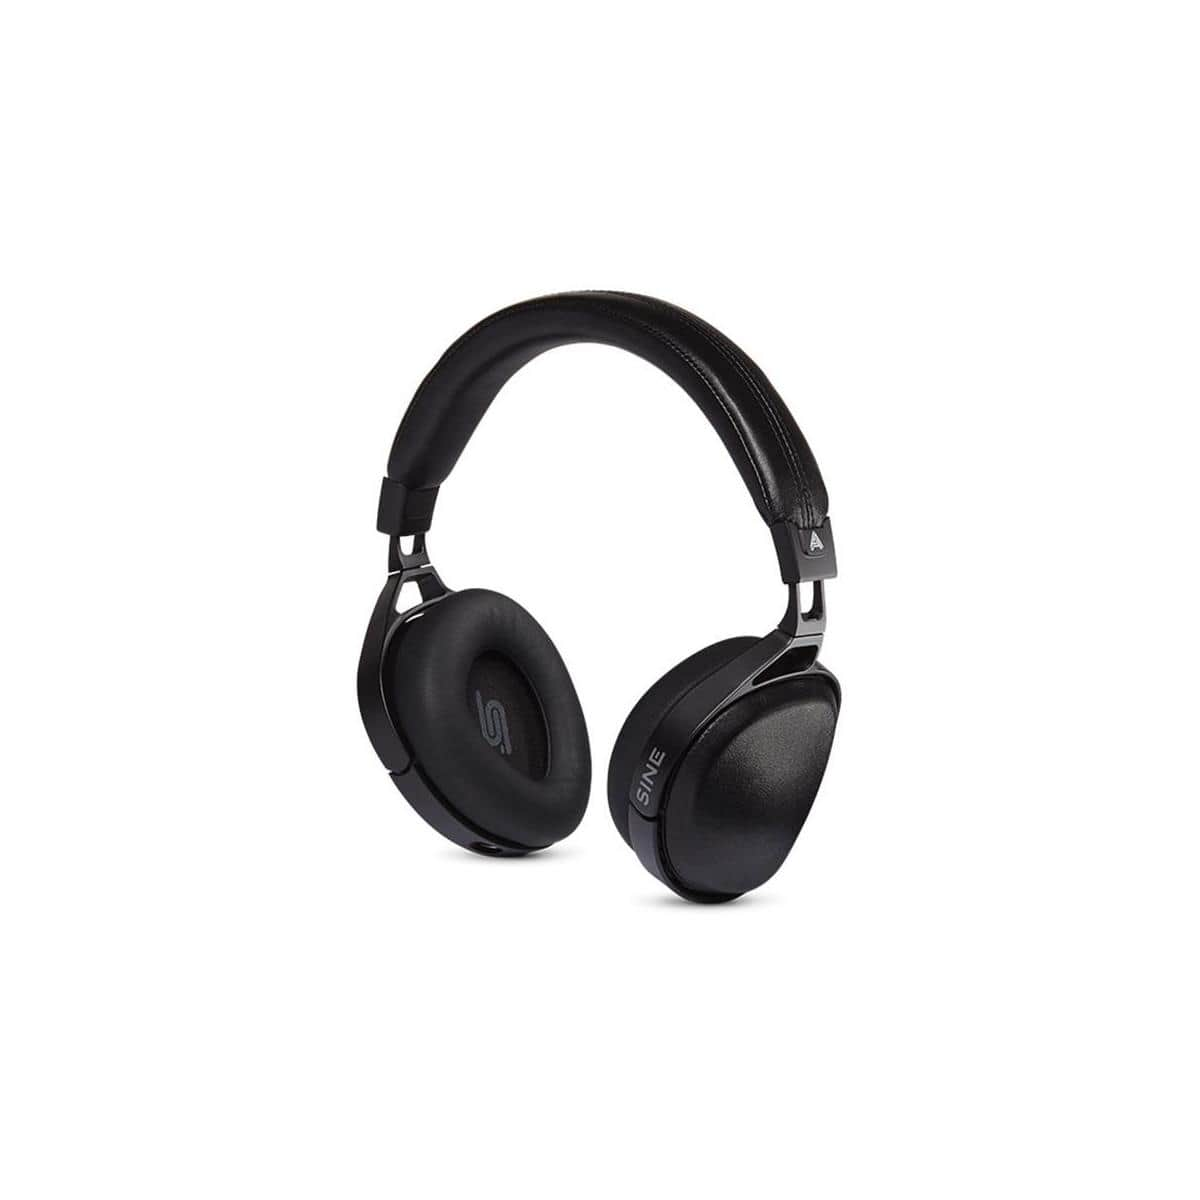 Audeze SINE On-Ear Headphones w/ Microphone and Cipher Lightning Cable $400 + free shipping